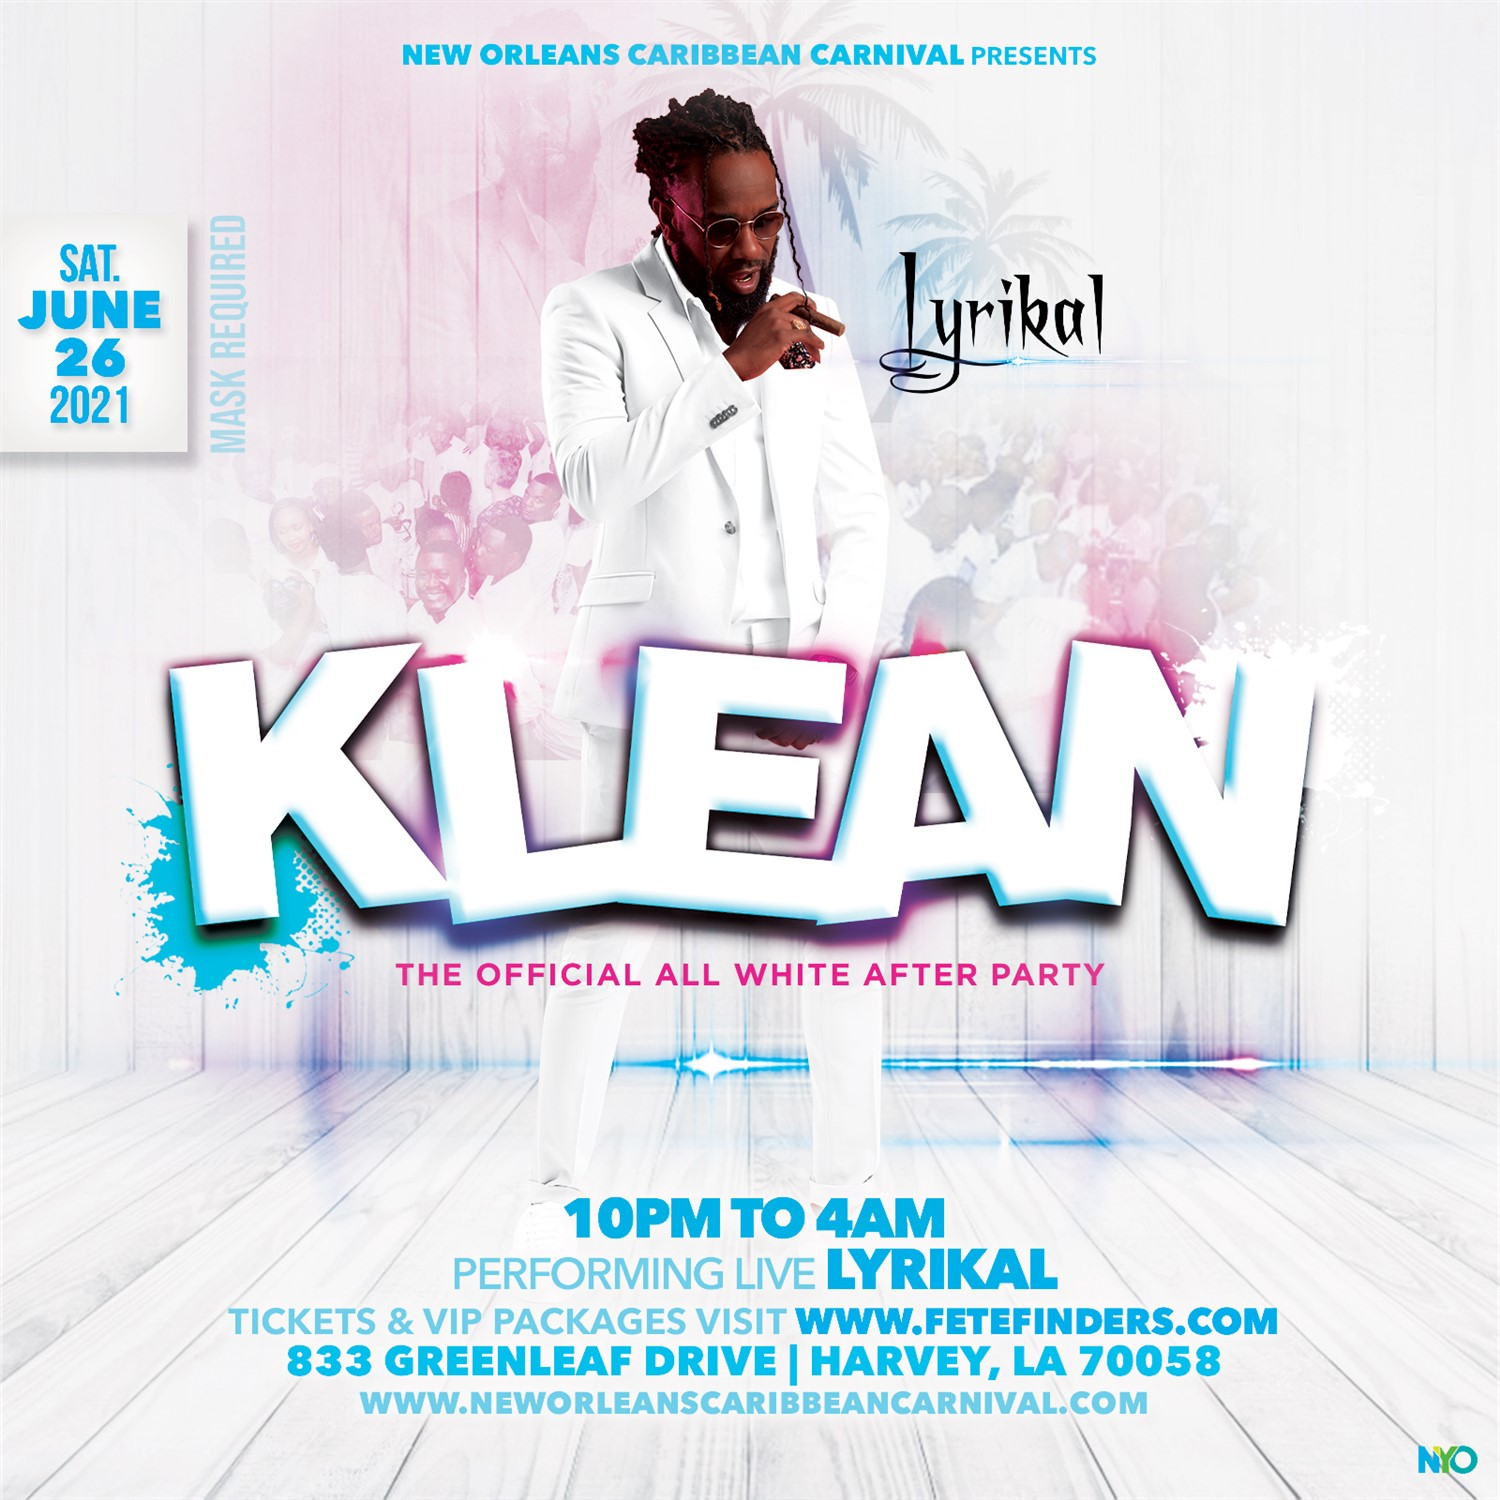 NOLA PRESENTS: KLEAN (The ALL WHITE AFFAIR) The Official All White After-Party on jun. 26, 22:00@The Dance Warehouse - Buy tickets and Get information on www.fetefinders.com tickets.fetefinders.com